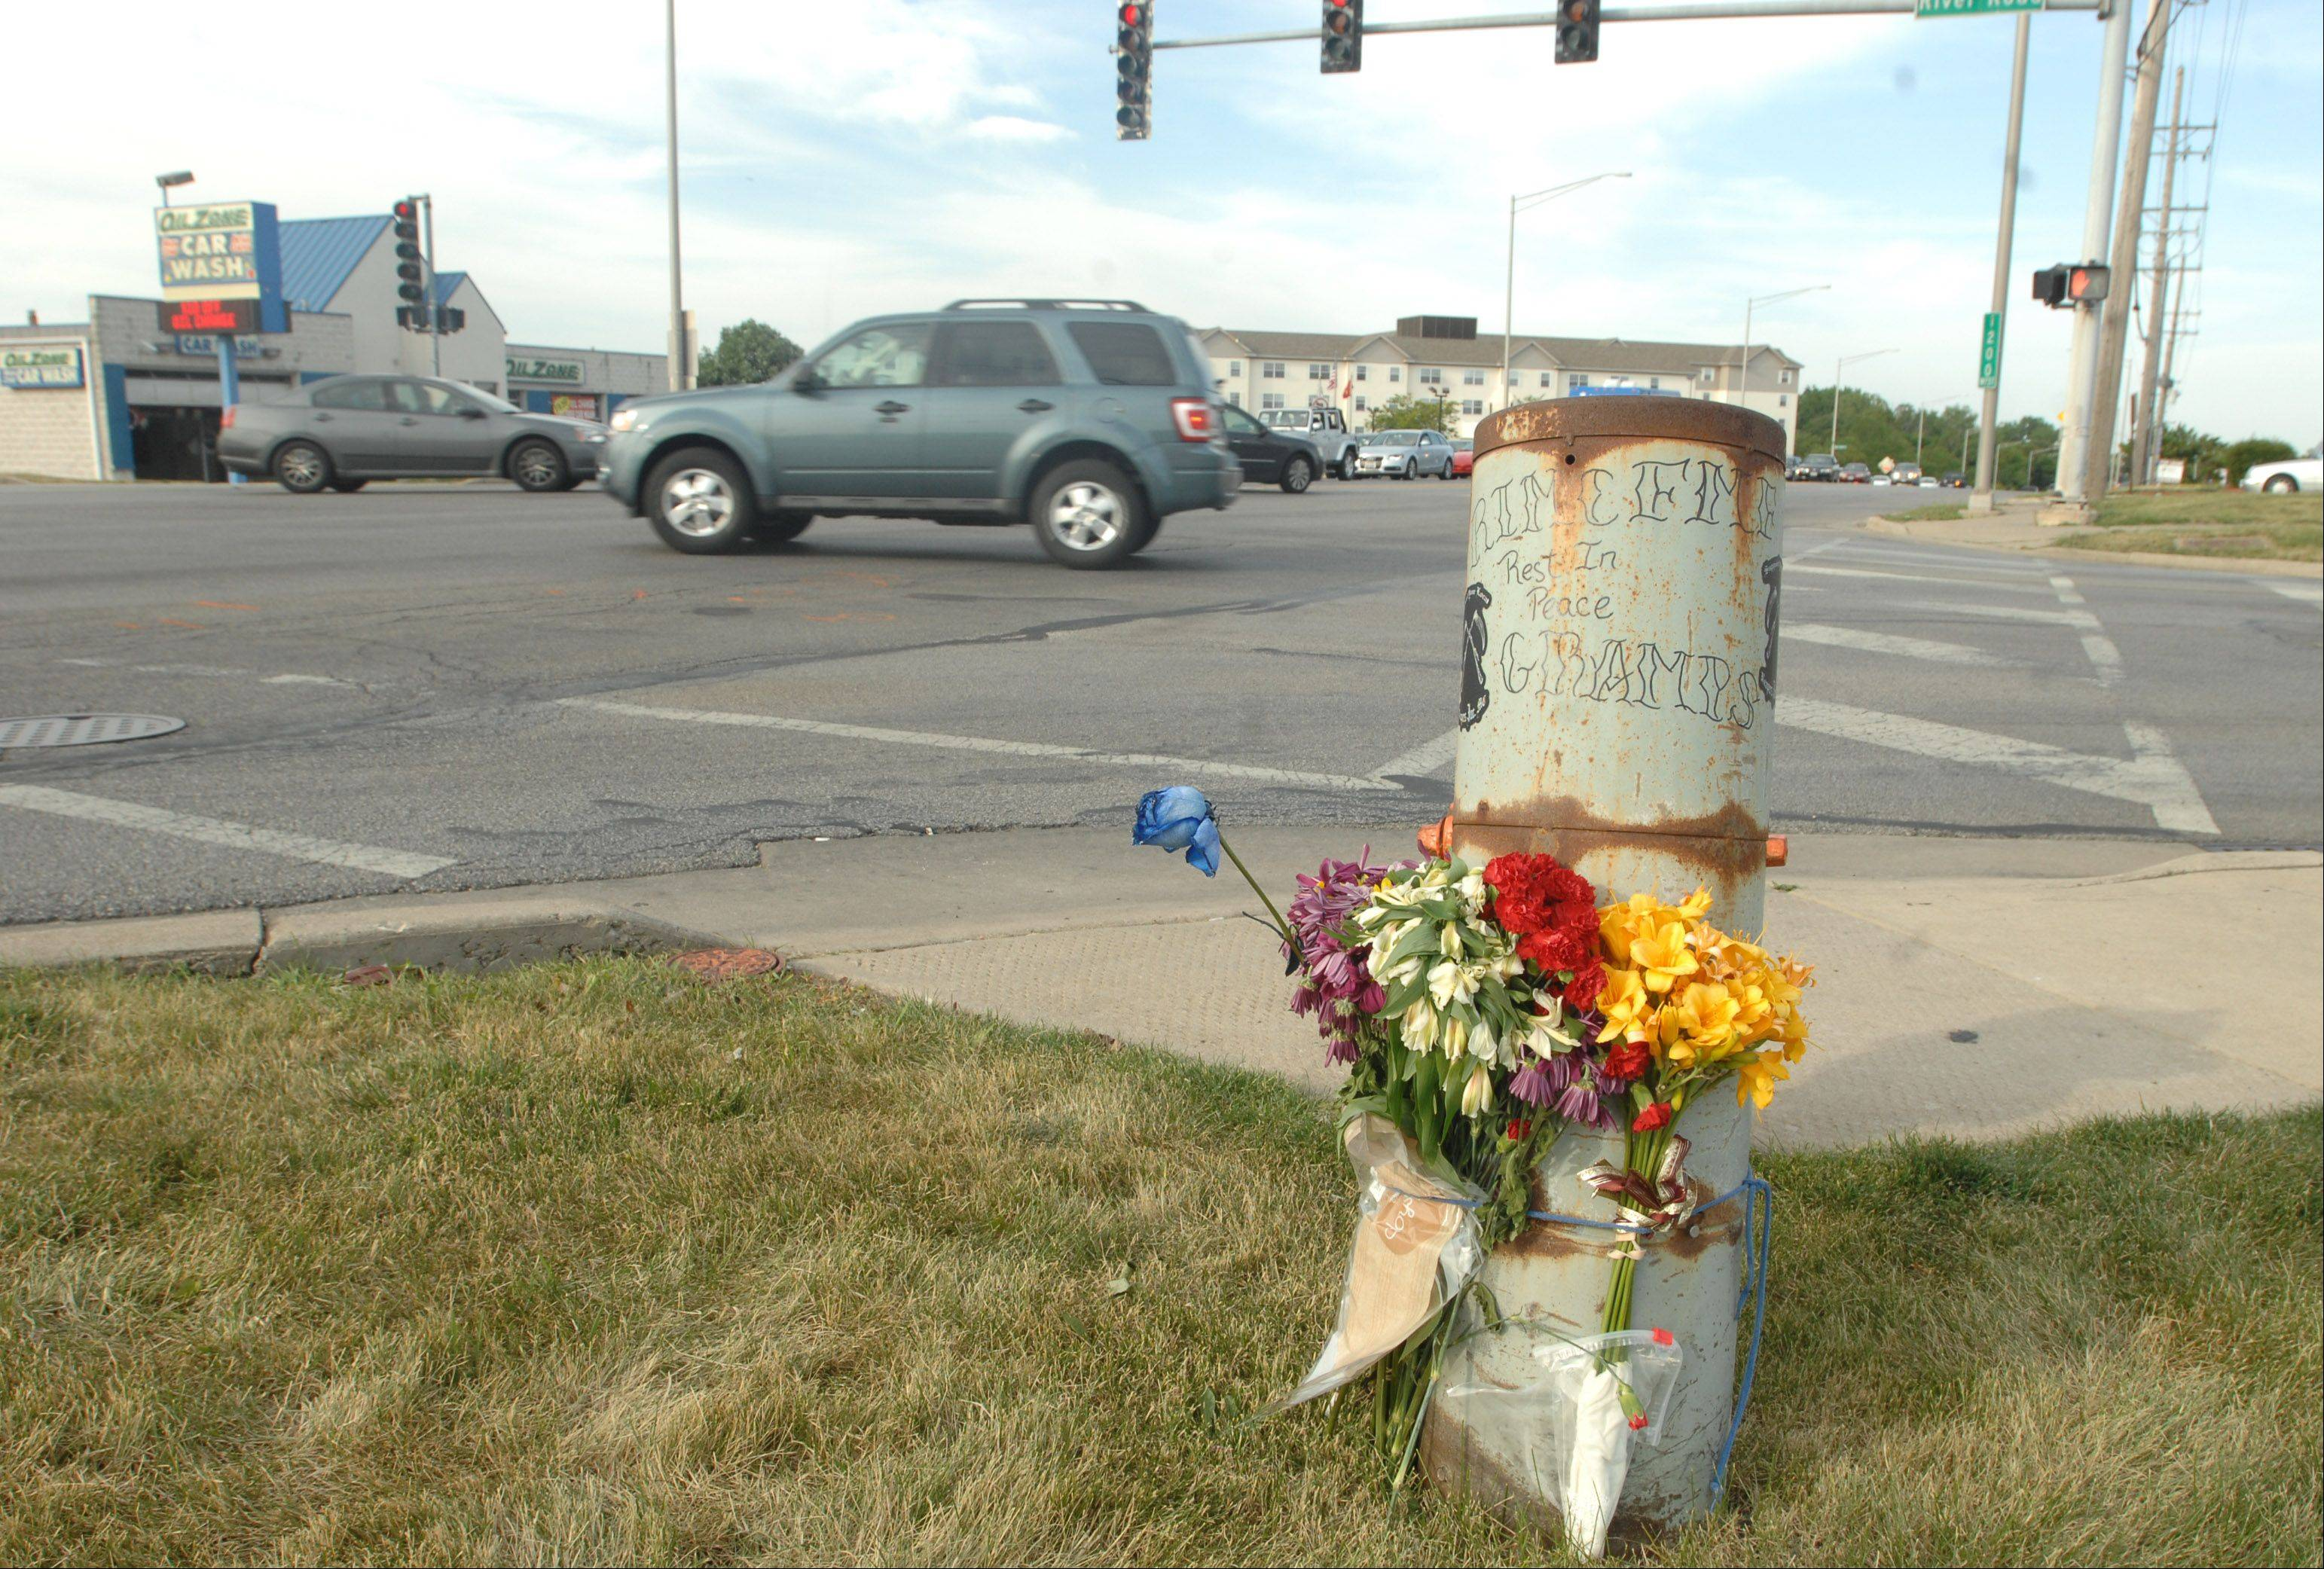 The intersection of Ogden Avenue and River Road in Naperville hosted a small memorial where Gerald Puglise of Lombard was killed last June.